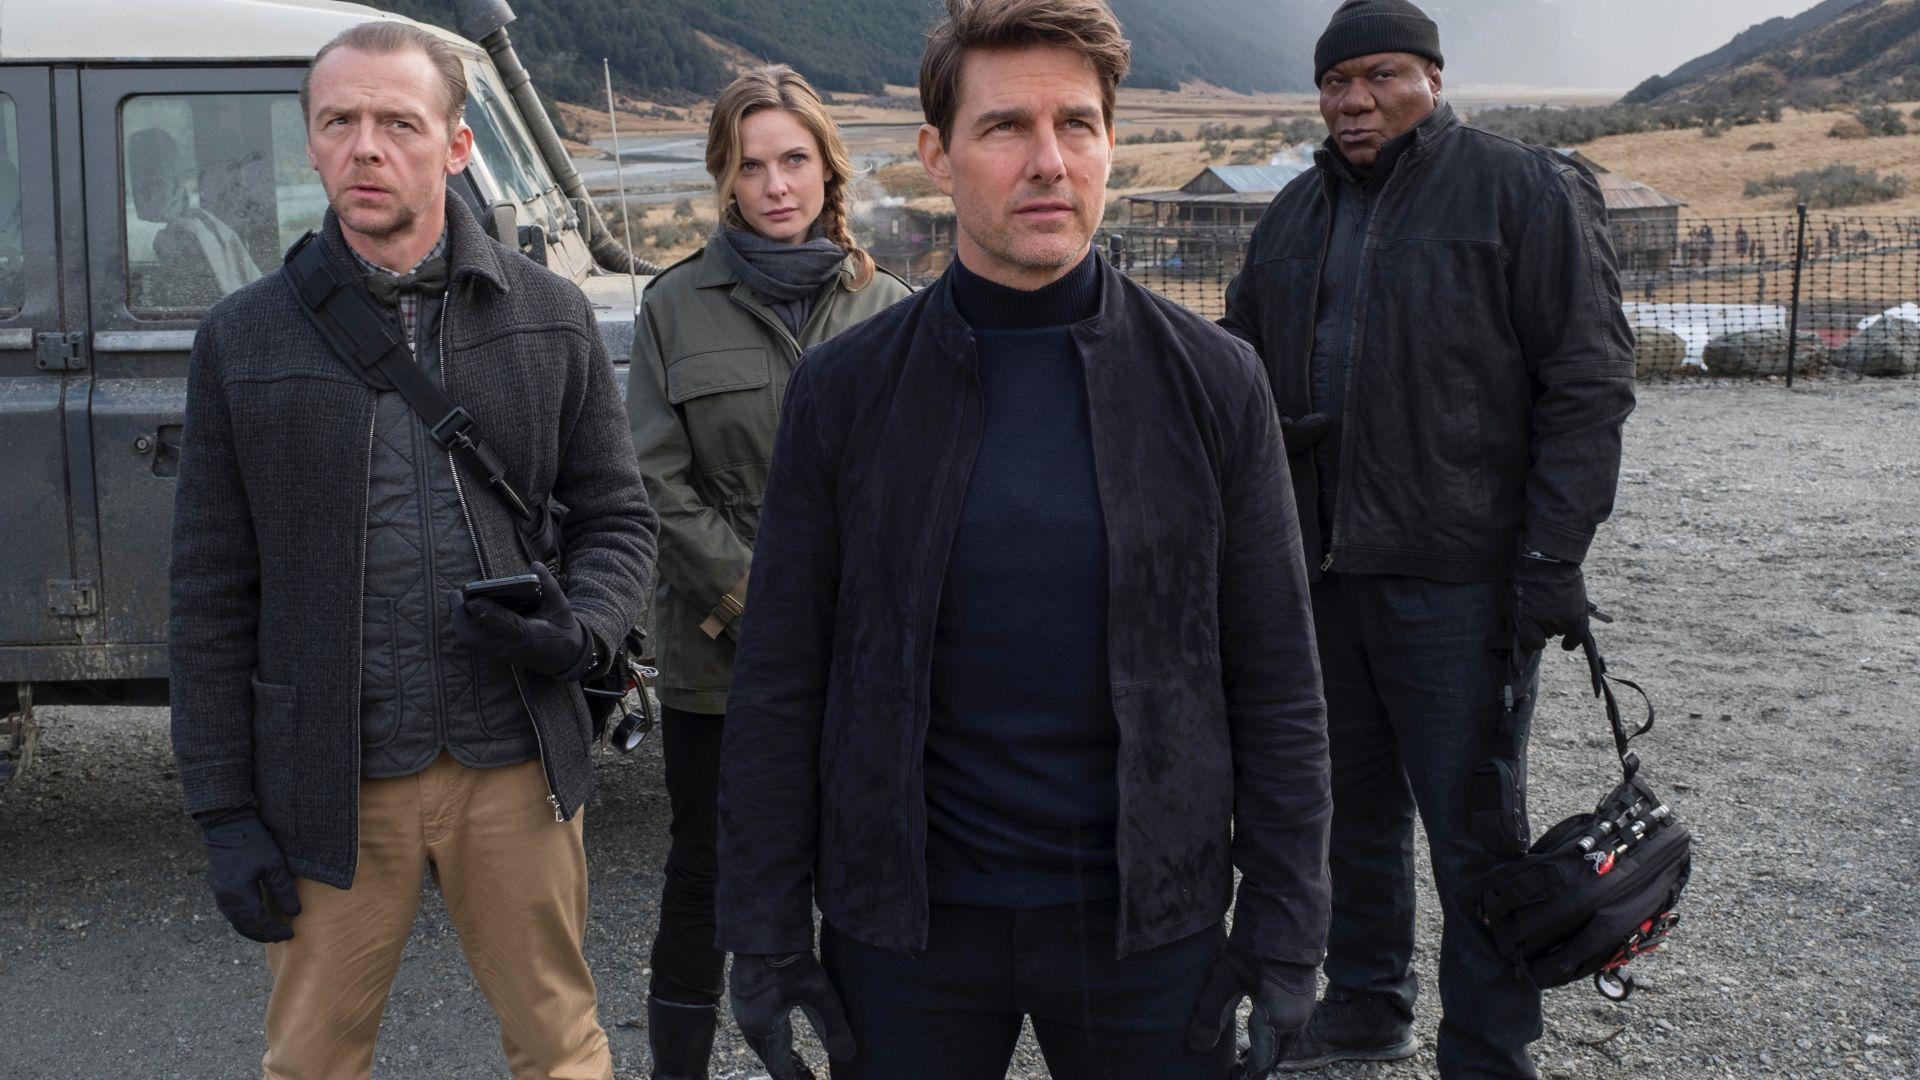 Mission: Impossible - Fallout, Tom Cruise, Ving Rhames, Rebecca Ferguson, Simon Pegg, 4k (horizontal)